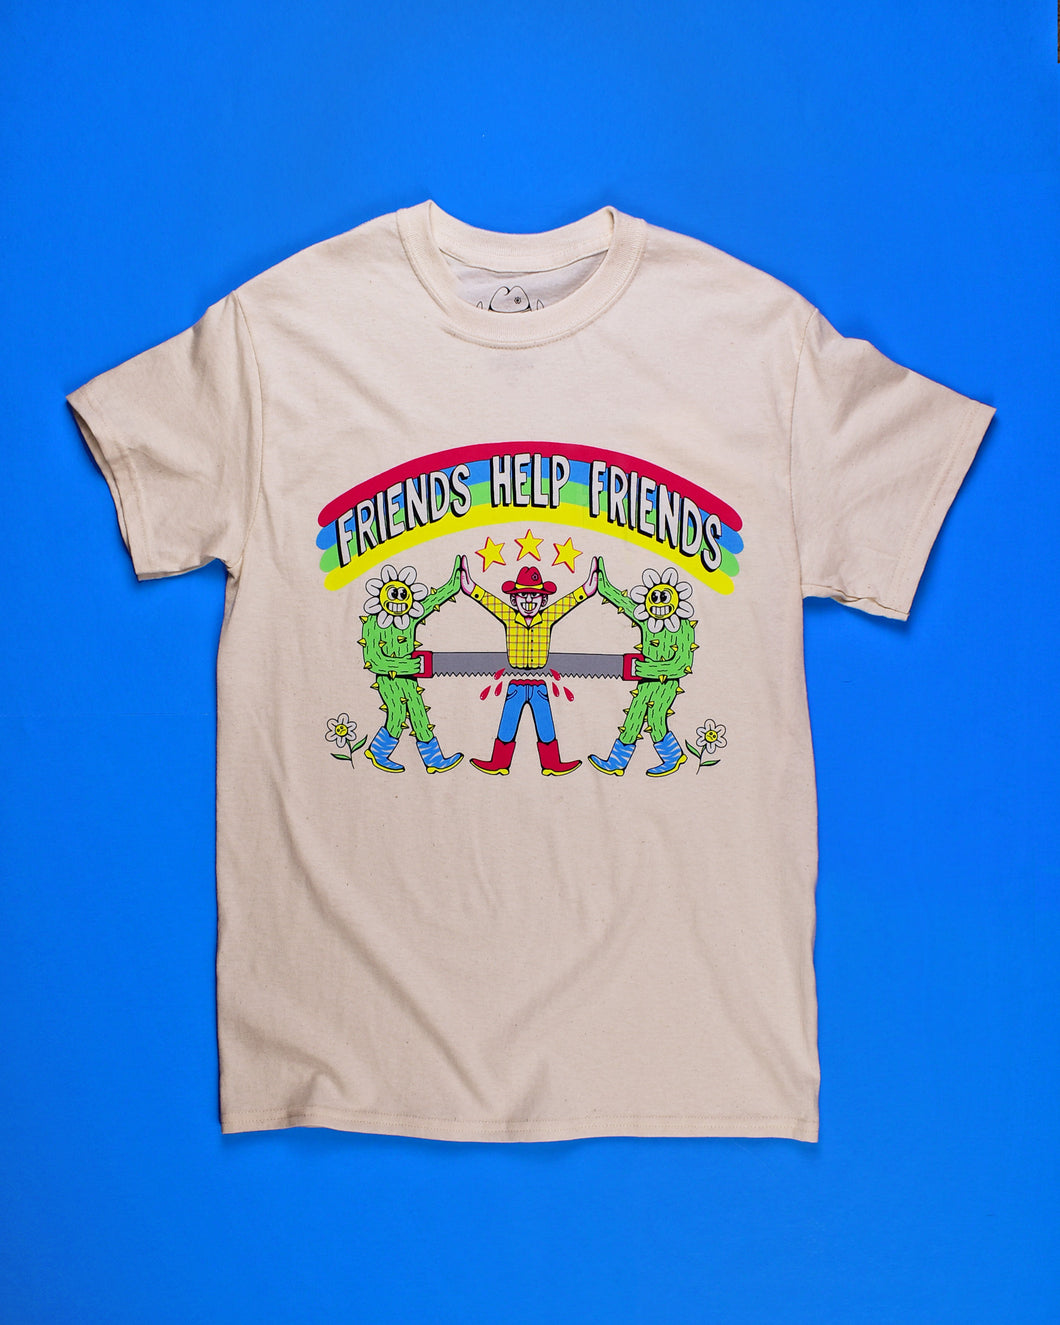 Natural color short sleeve t-shirt with rainbow arch at the top of the graphic with Friends Help Friends on top of it. Two human/cactus with flowers for heads and blue and white zebra print boots on either side of the Cowboy that's in the center. The cowboy has a hot pink hat and boots, yellow plaid shirt and blue jeans. 3 gold stars above the Cowboy. All 3 characters are high fiving each other. The Cowboy is being sawed in half. 2 white flowers at the heals of the human cactus.